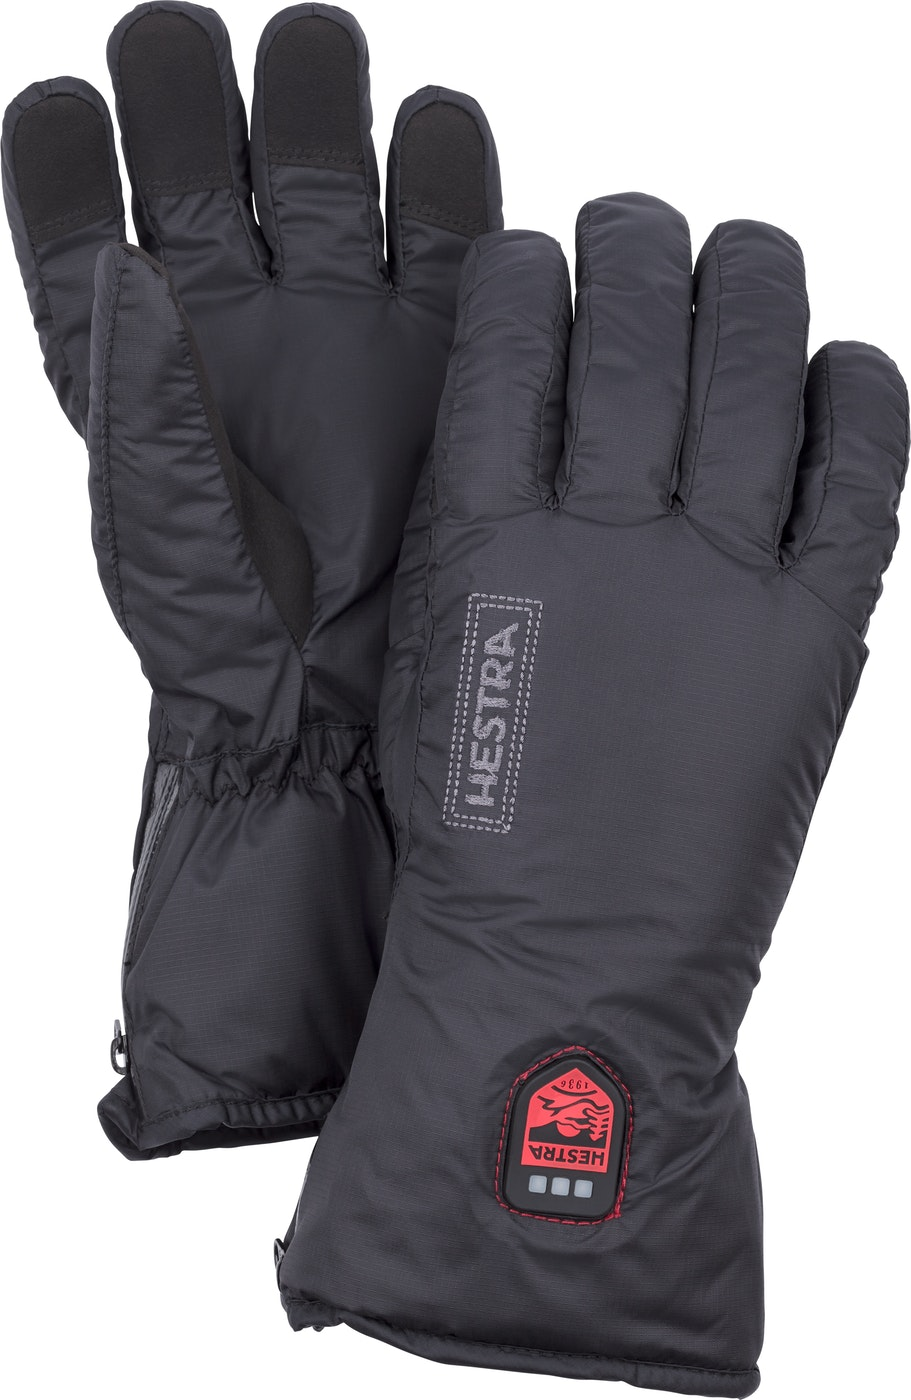 Product image for 34020 Women´s Heated Liner